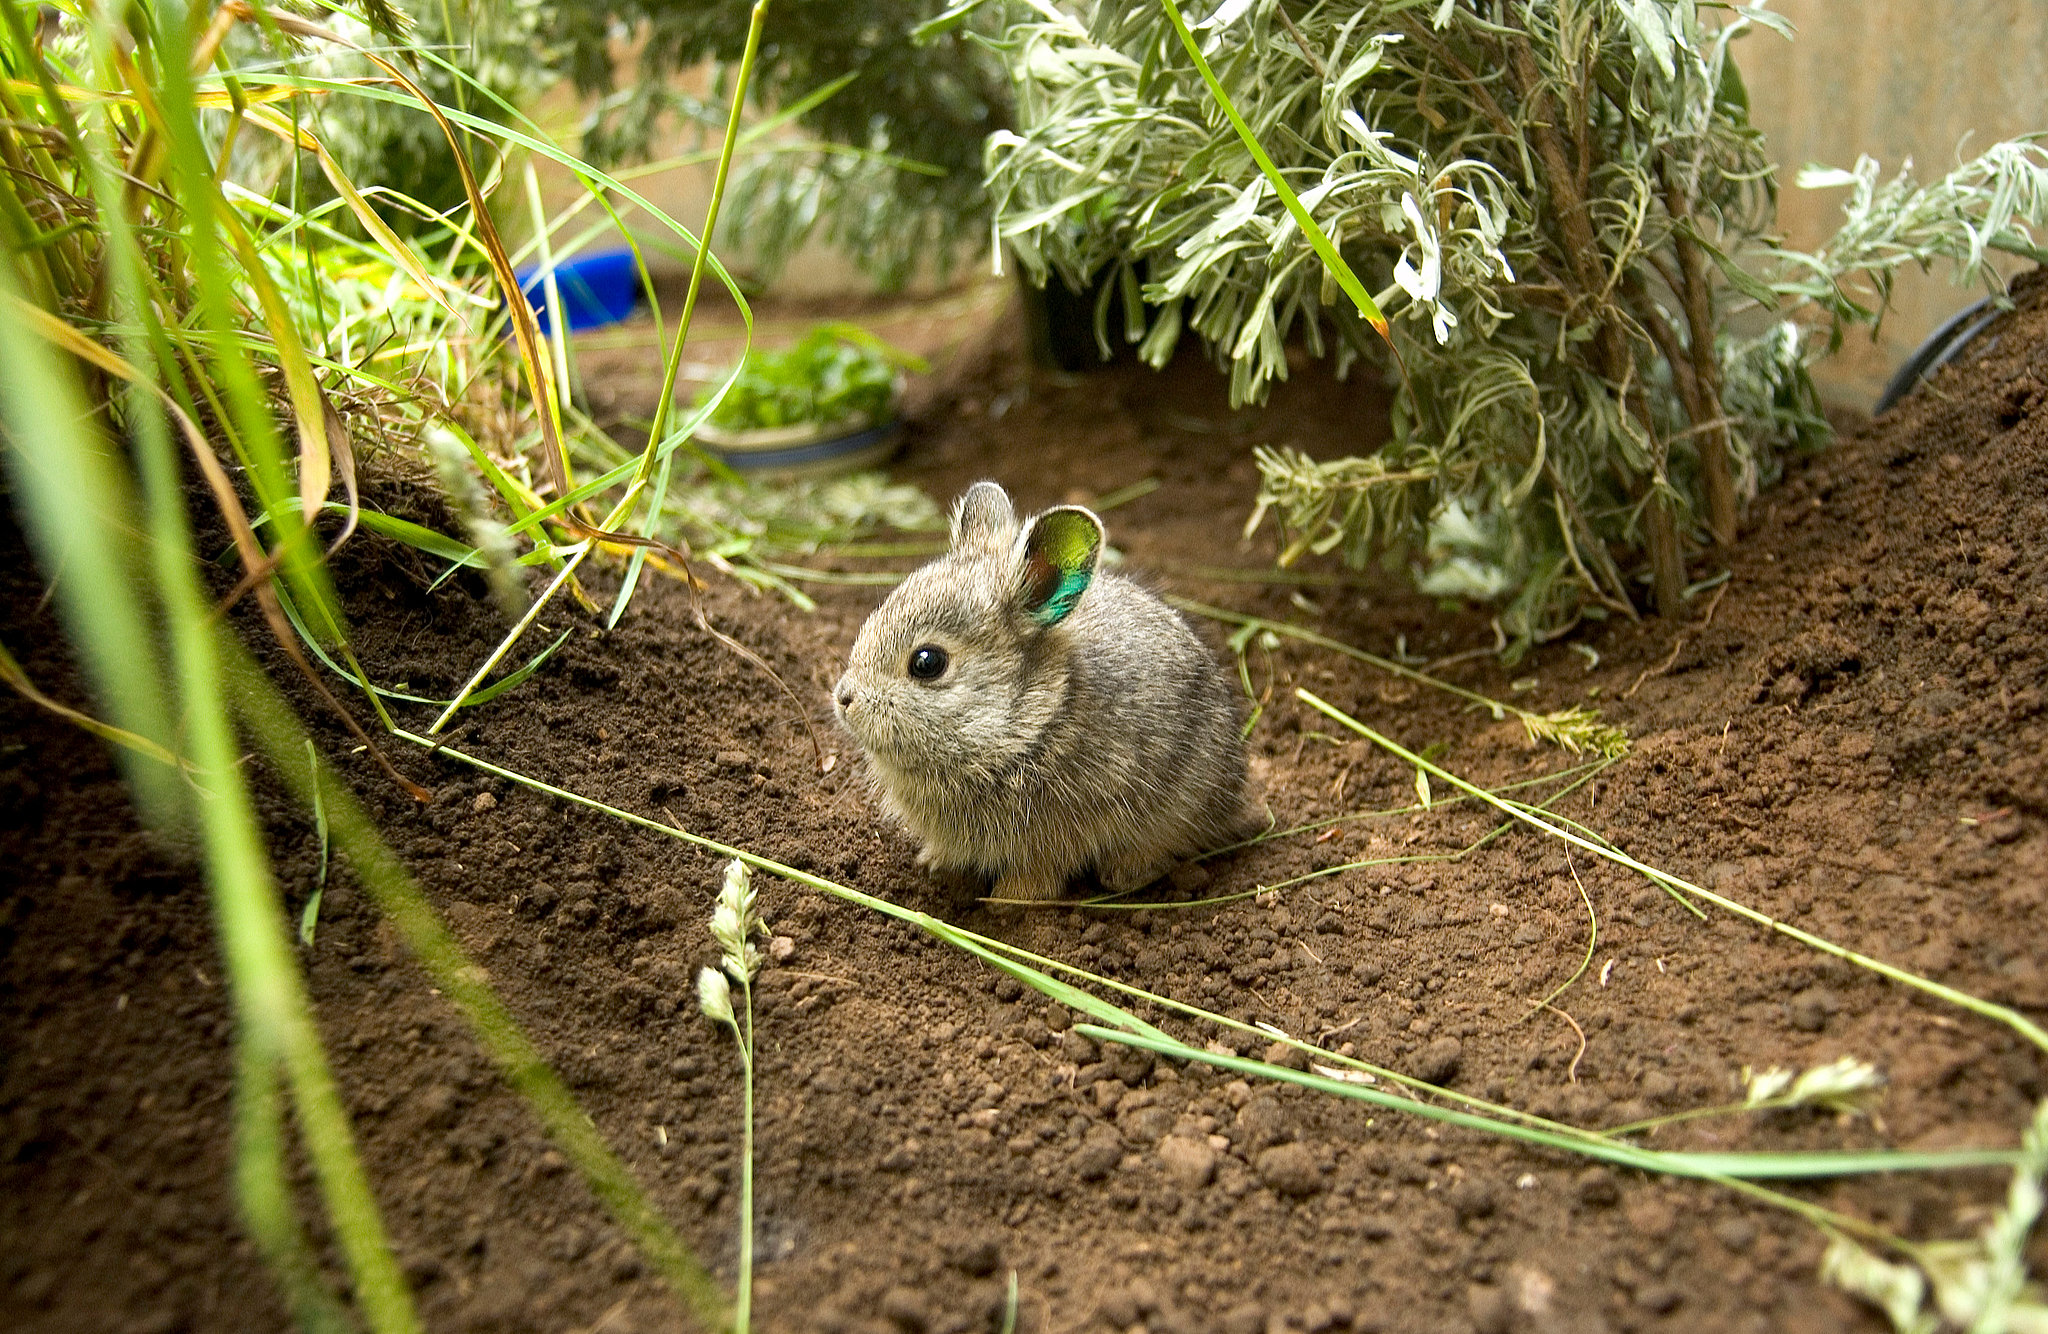 Not only do they weigh in around 400 grams, but Columbia Basin Pygmy Rabbits are also about the length of a pencil!